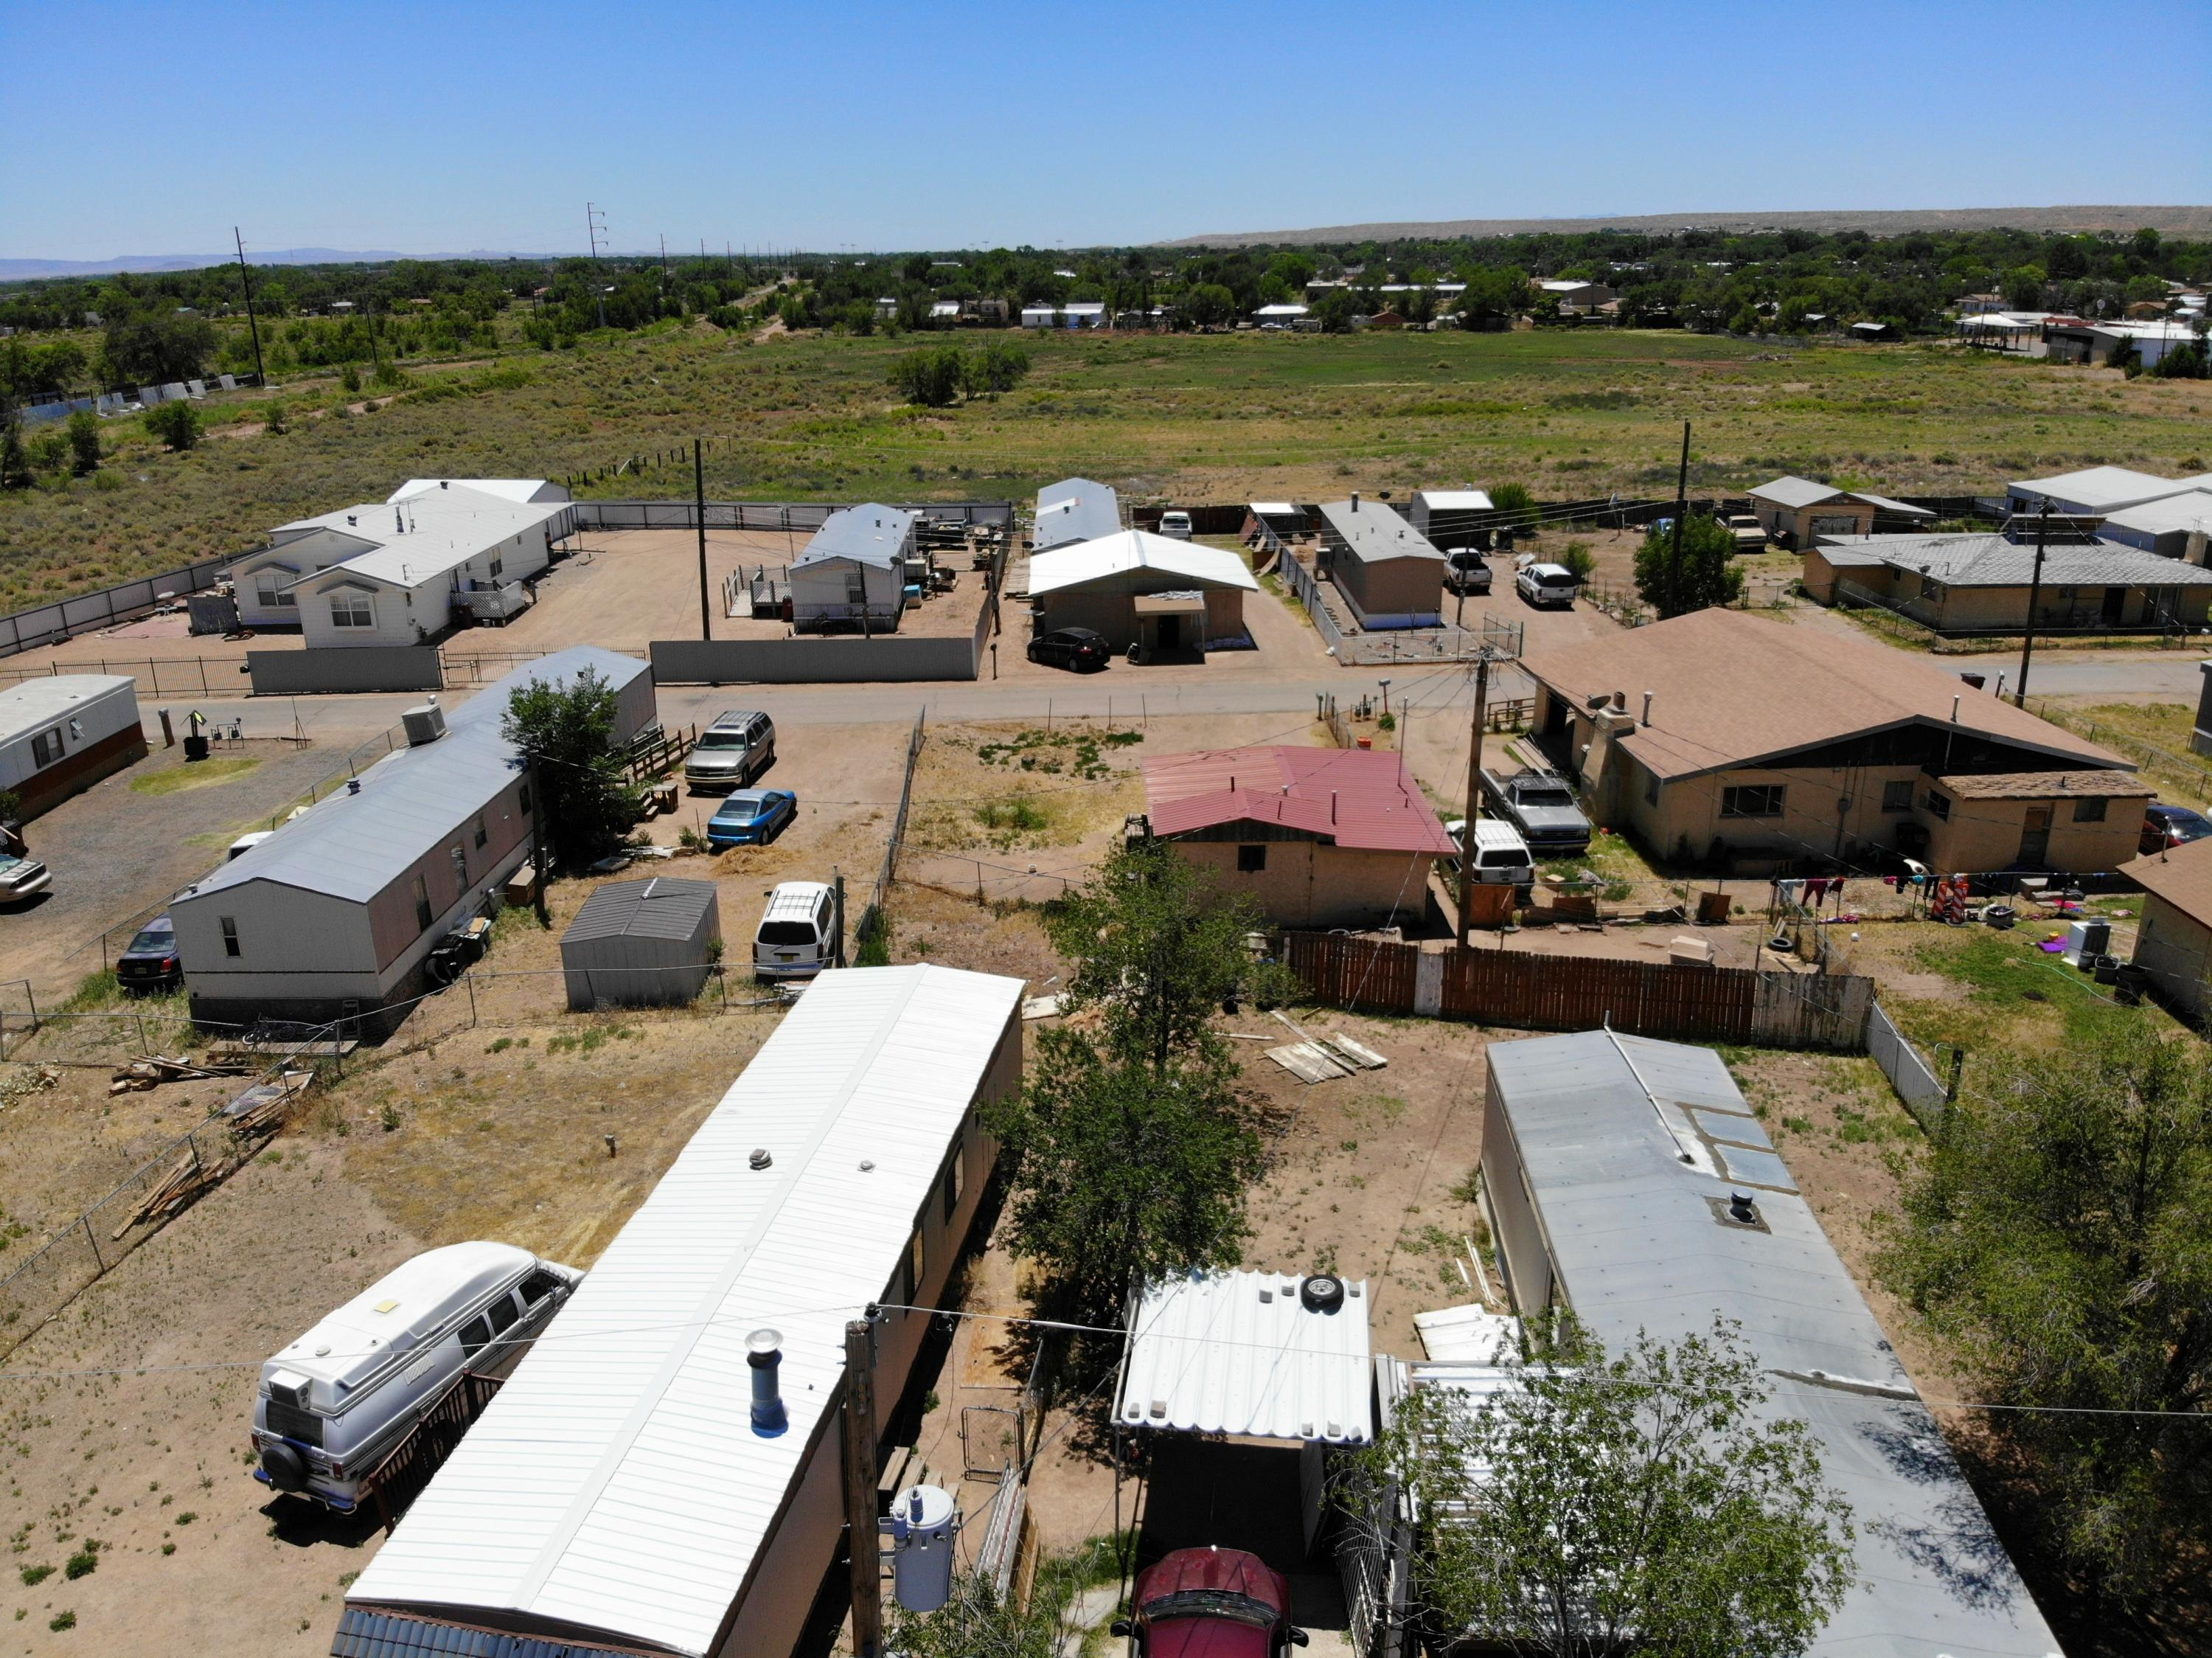 702 Camino Del Llano Property Photo - Belen, NM real estate listing